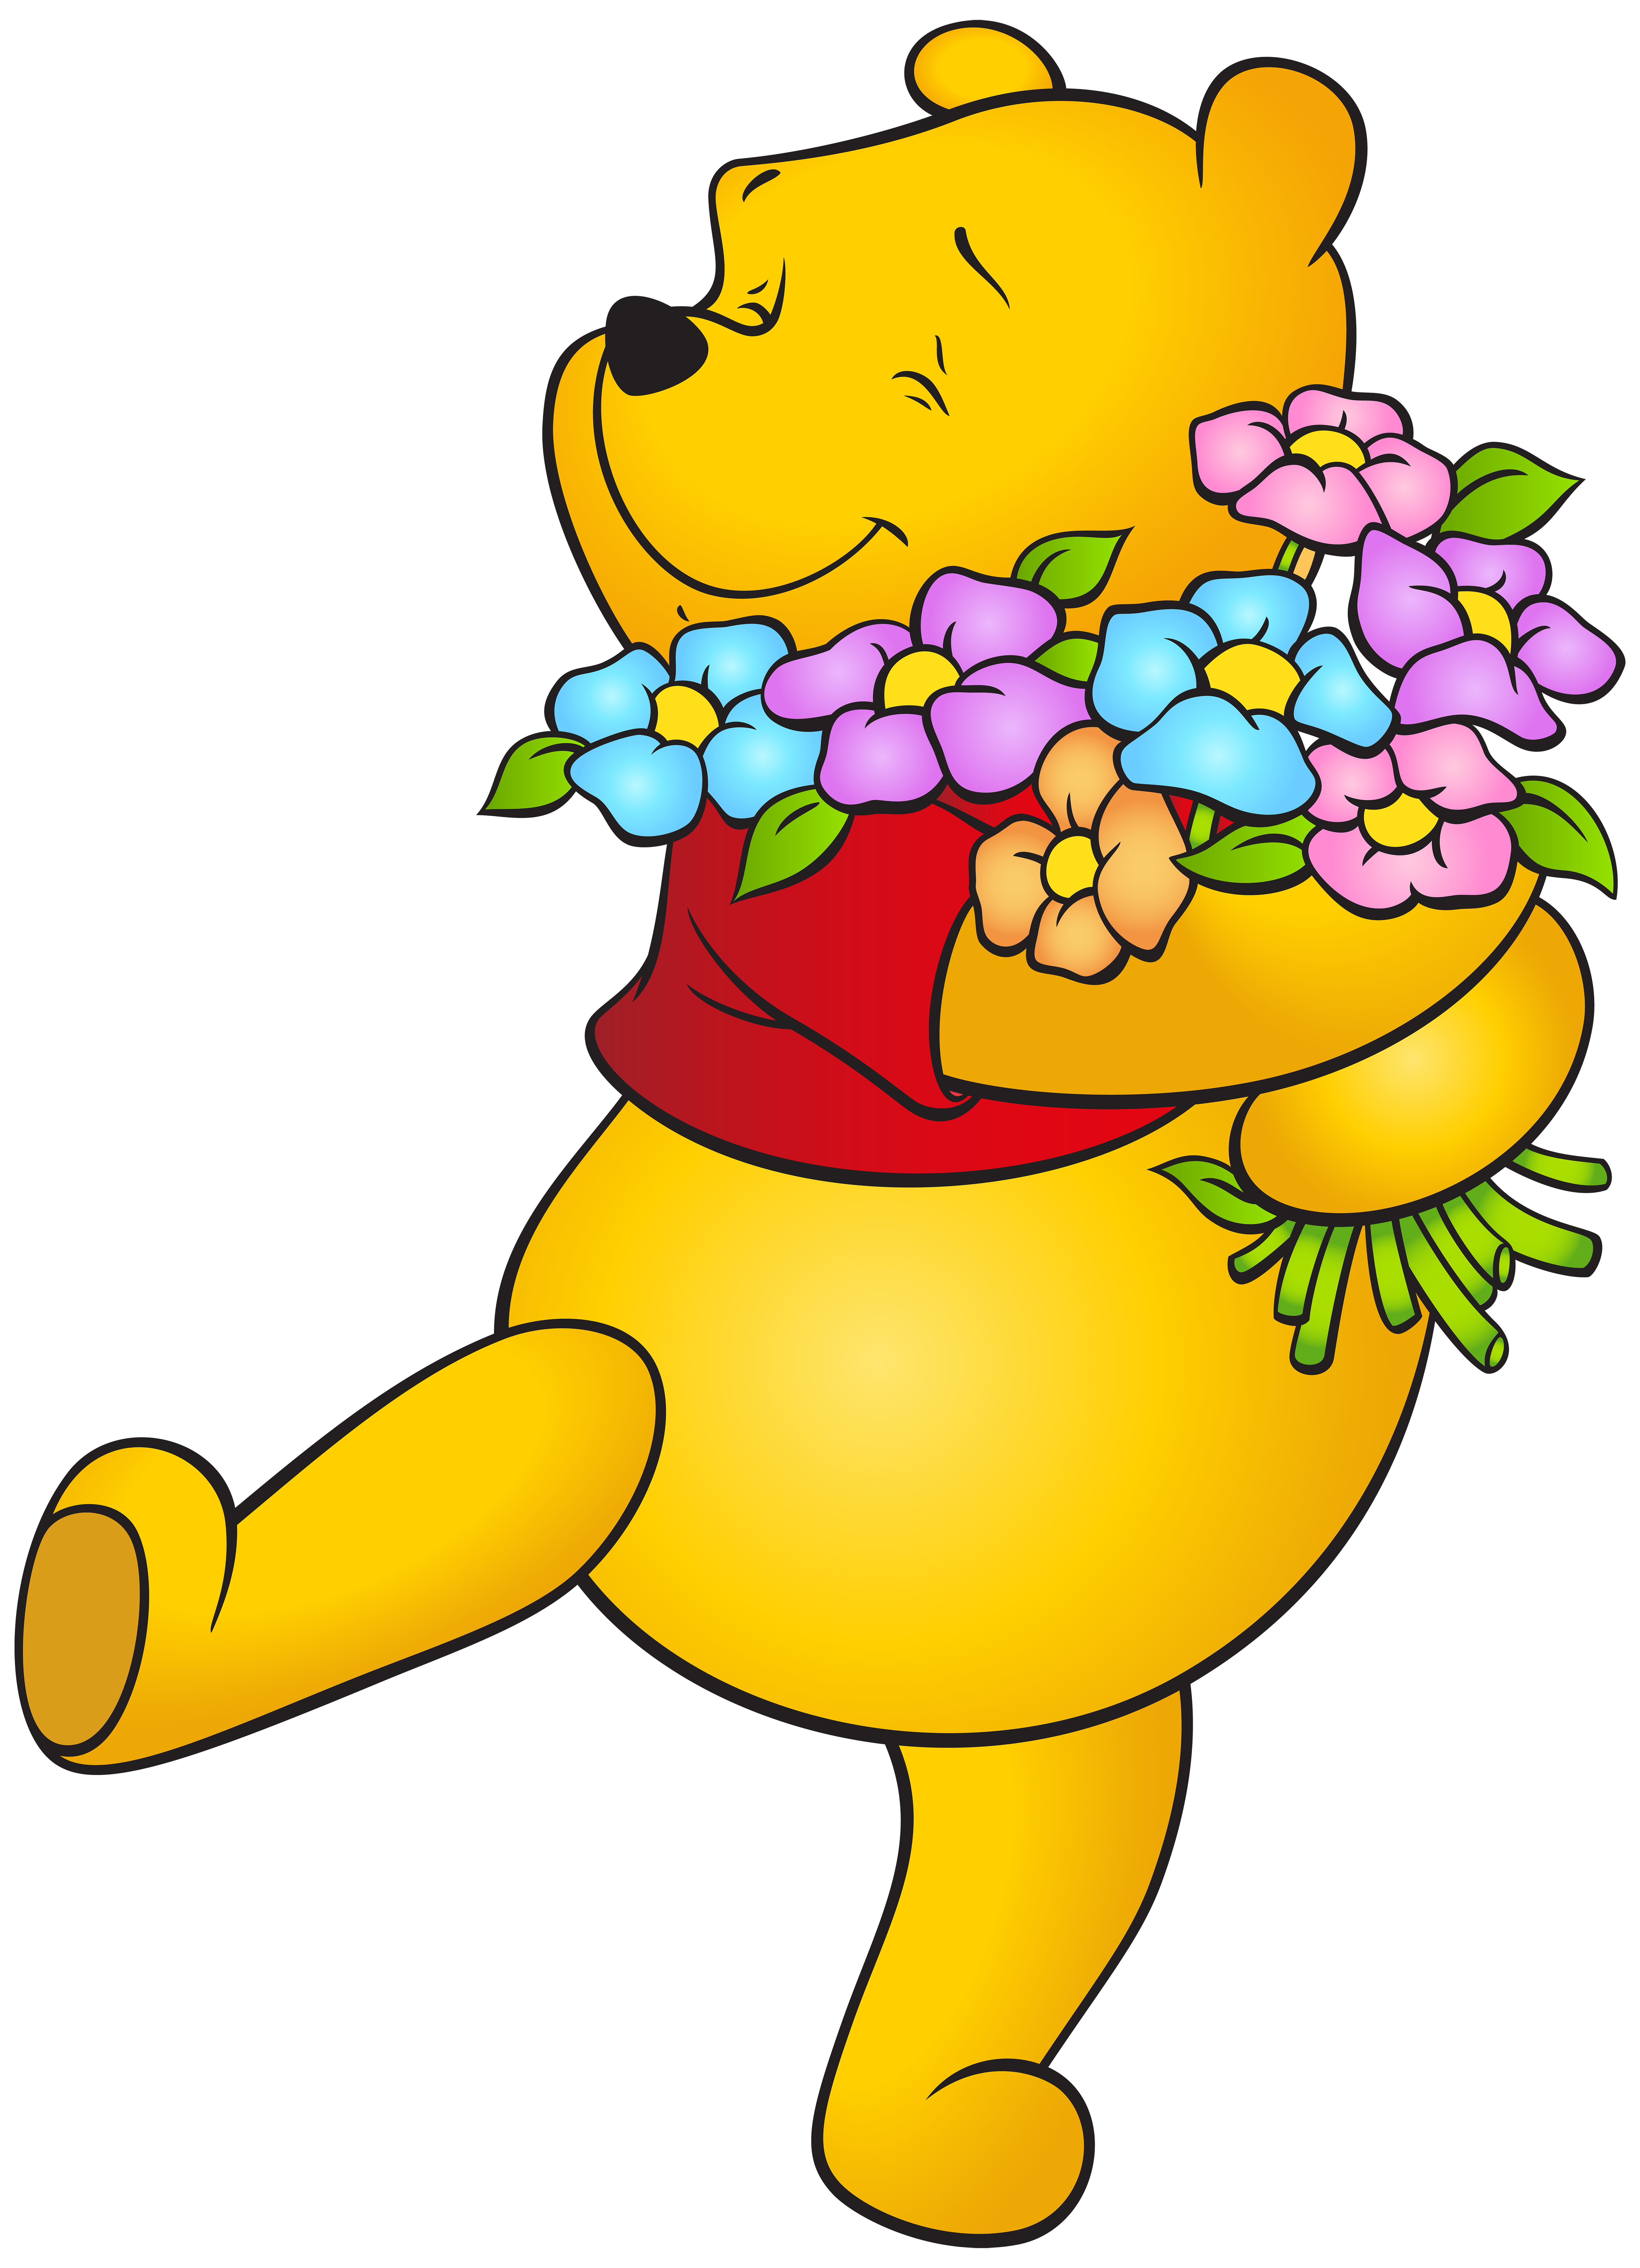 Disney clipart pooh bee halloween png library Winnie The Pooh Halloween Clipart at GetDrawings.com | Free for ... png library